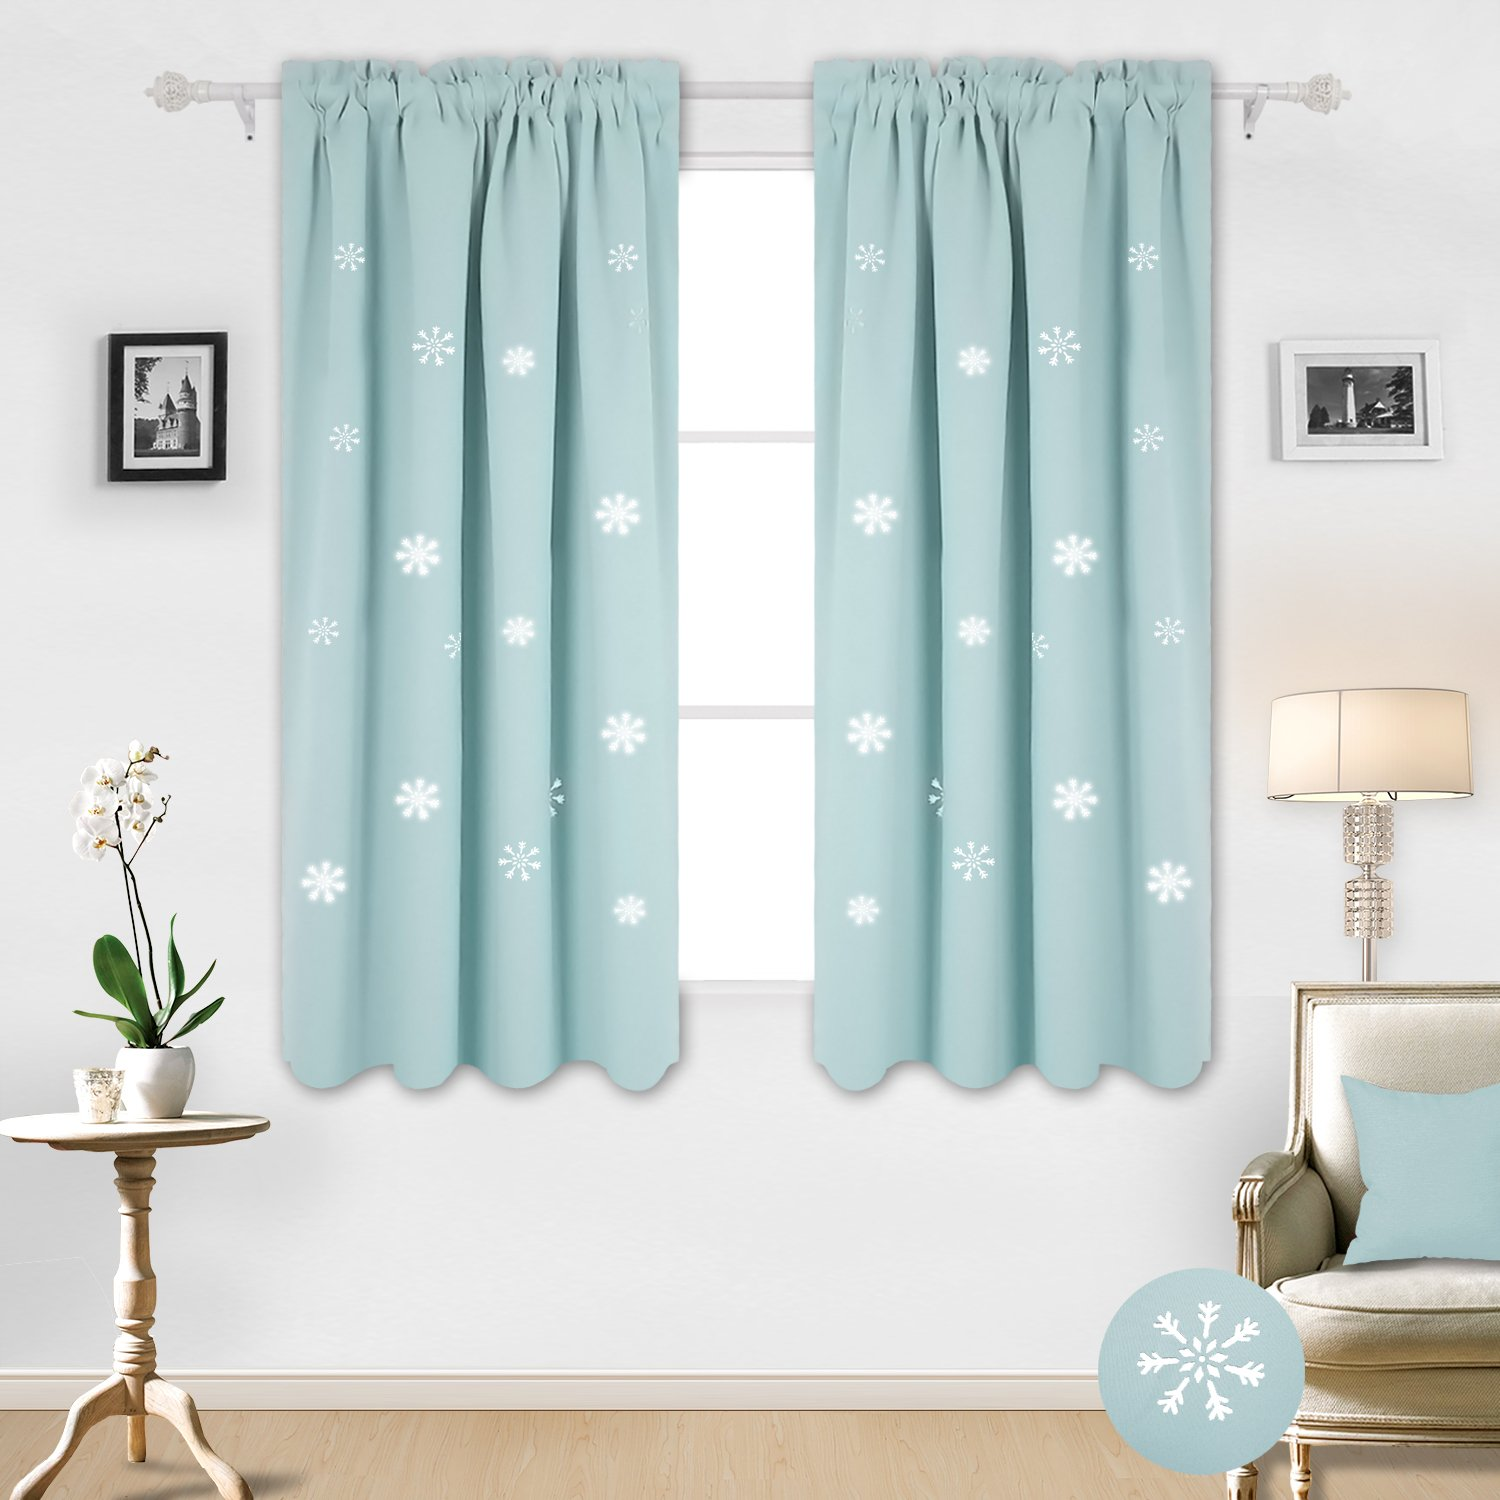 Deconovo Decorative Rod Pocket Thermal Insulated Blackout Curtains for Baby Room with Christmas Die Cut Snowflake 52W x 63L Inch Sky Blue 2 Panels